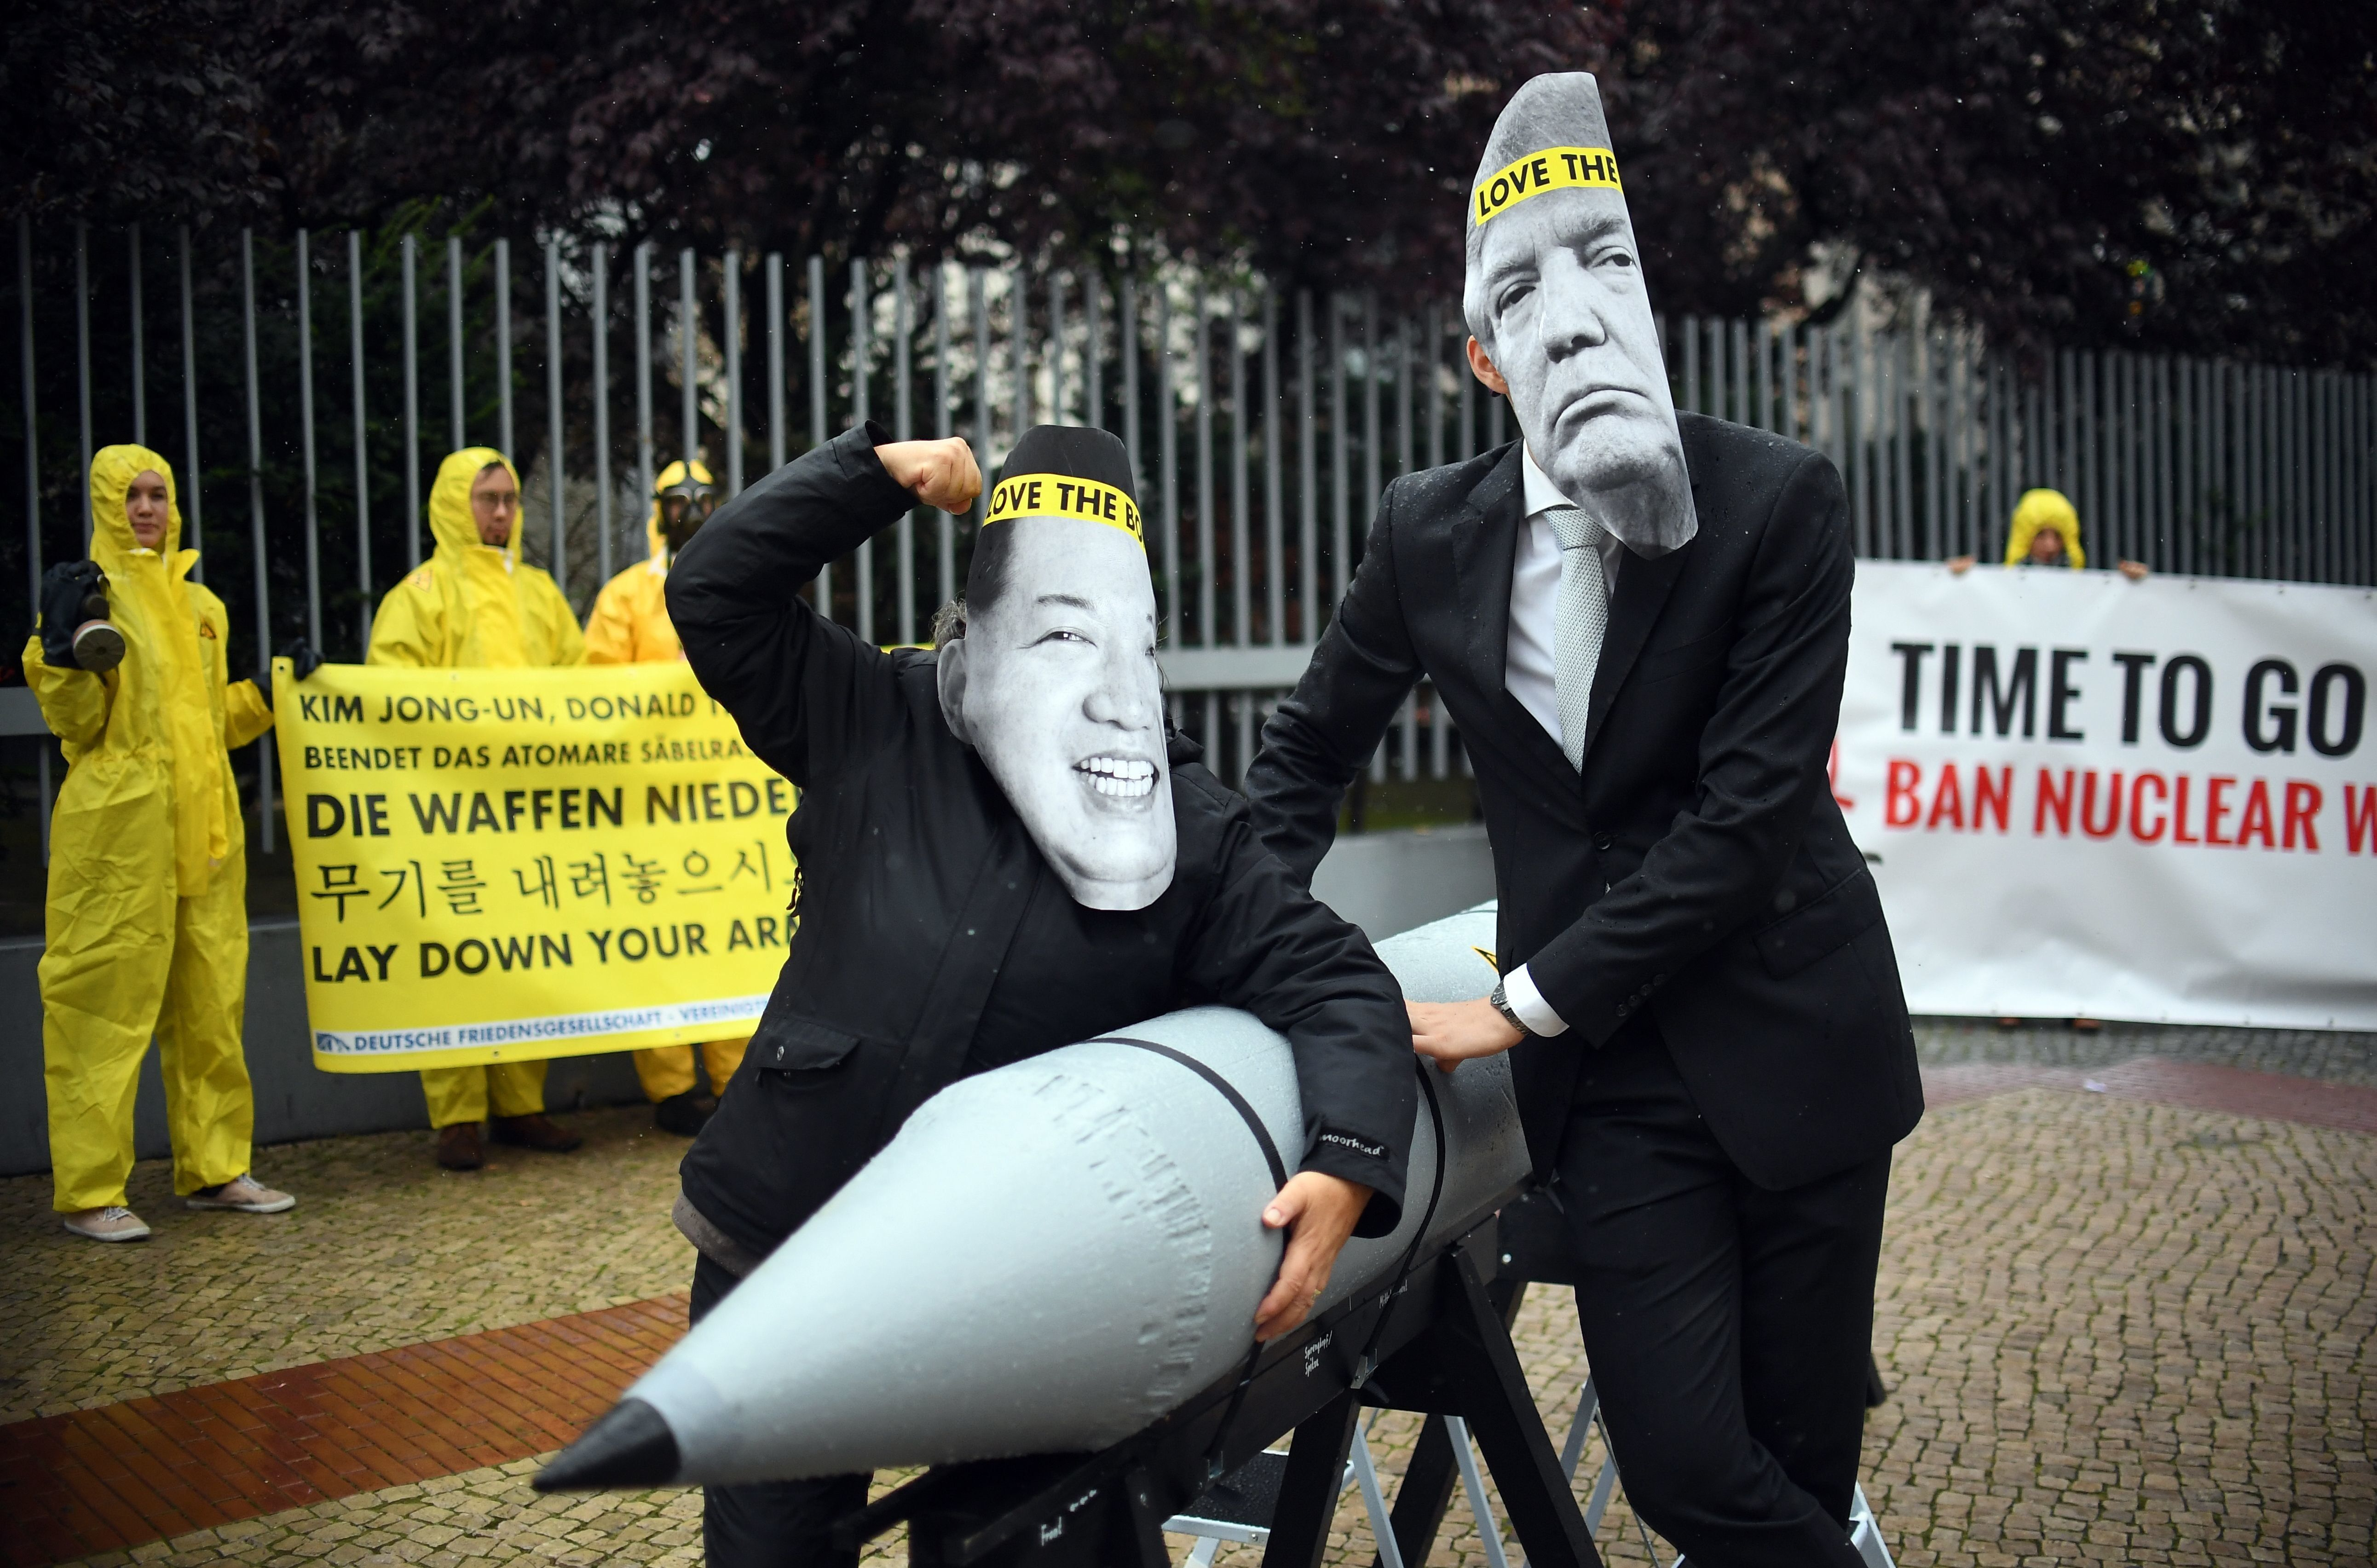 Activists of the non-governmental organization 'International Campaign to Abolish Nuclear Weapons (ICAN)' wear masks of US President Donal Trump and leader of the Democratic People's Republic of Korea Kim Jon-un while posing with a mock missile in front of the embassy of Democratic People's Republic of Korea in Berlin, on September 13, 2017. / AFP PHOTO / dpa / Britta Pedersen / Germany OUT        (Photo credit should read BRITTA PEDERSEN/AFP/Getty Images)